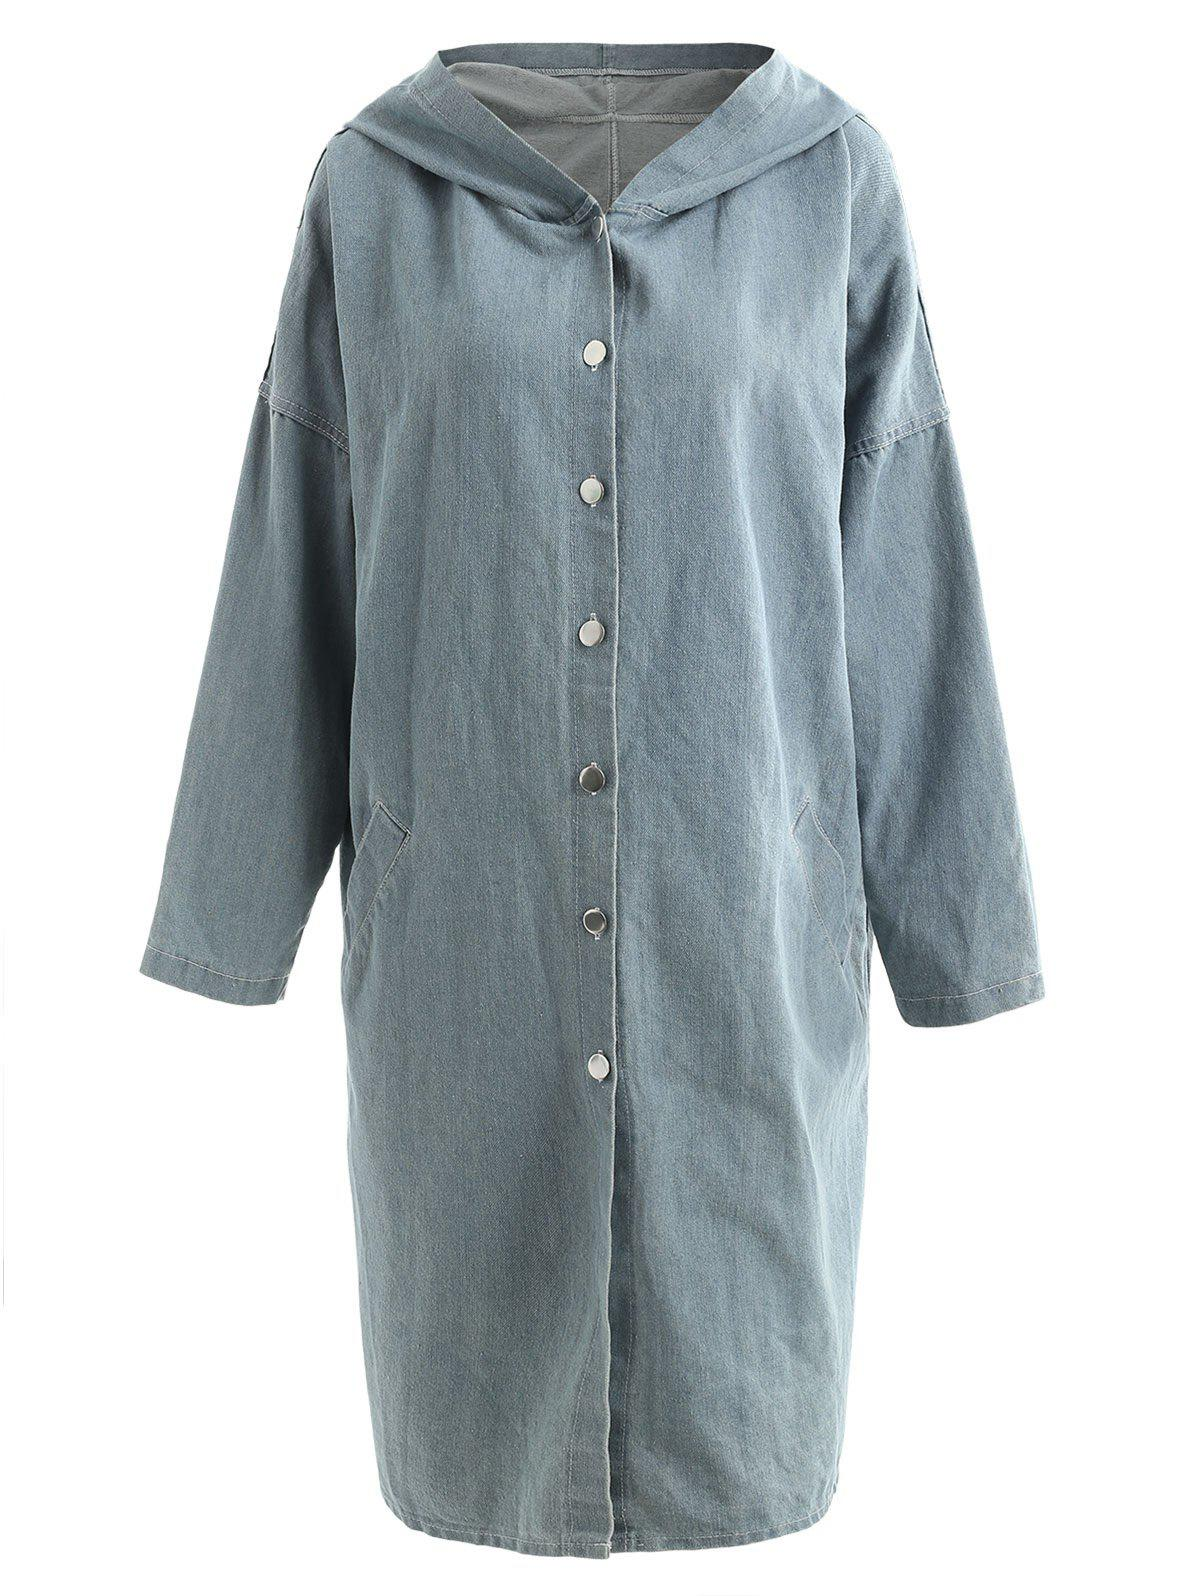 Hooded Button Down Long Denim Coat - BLUE GRAY ONE SIZE